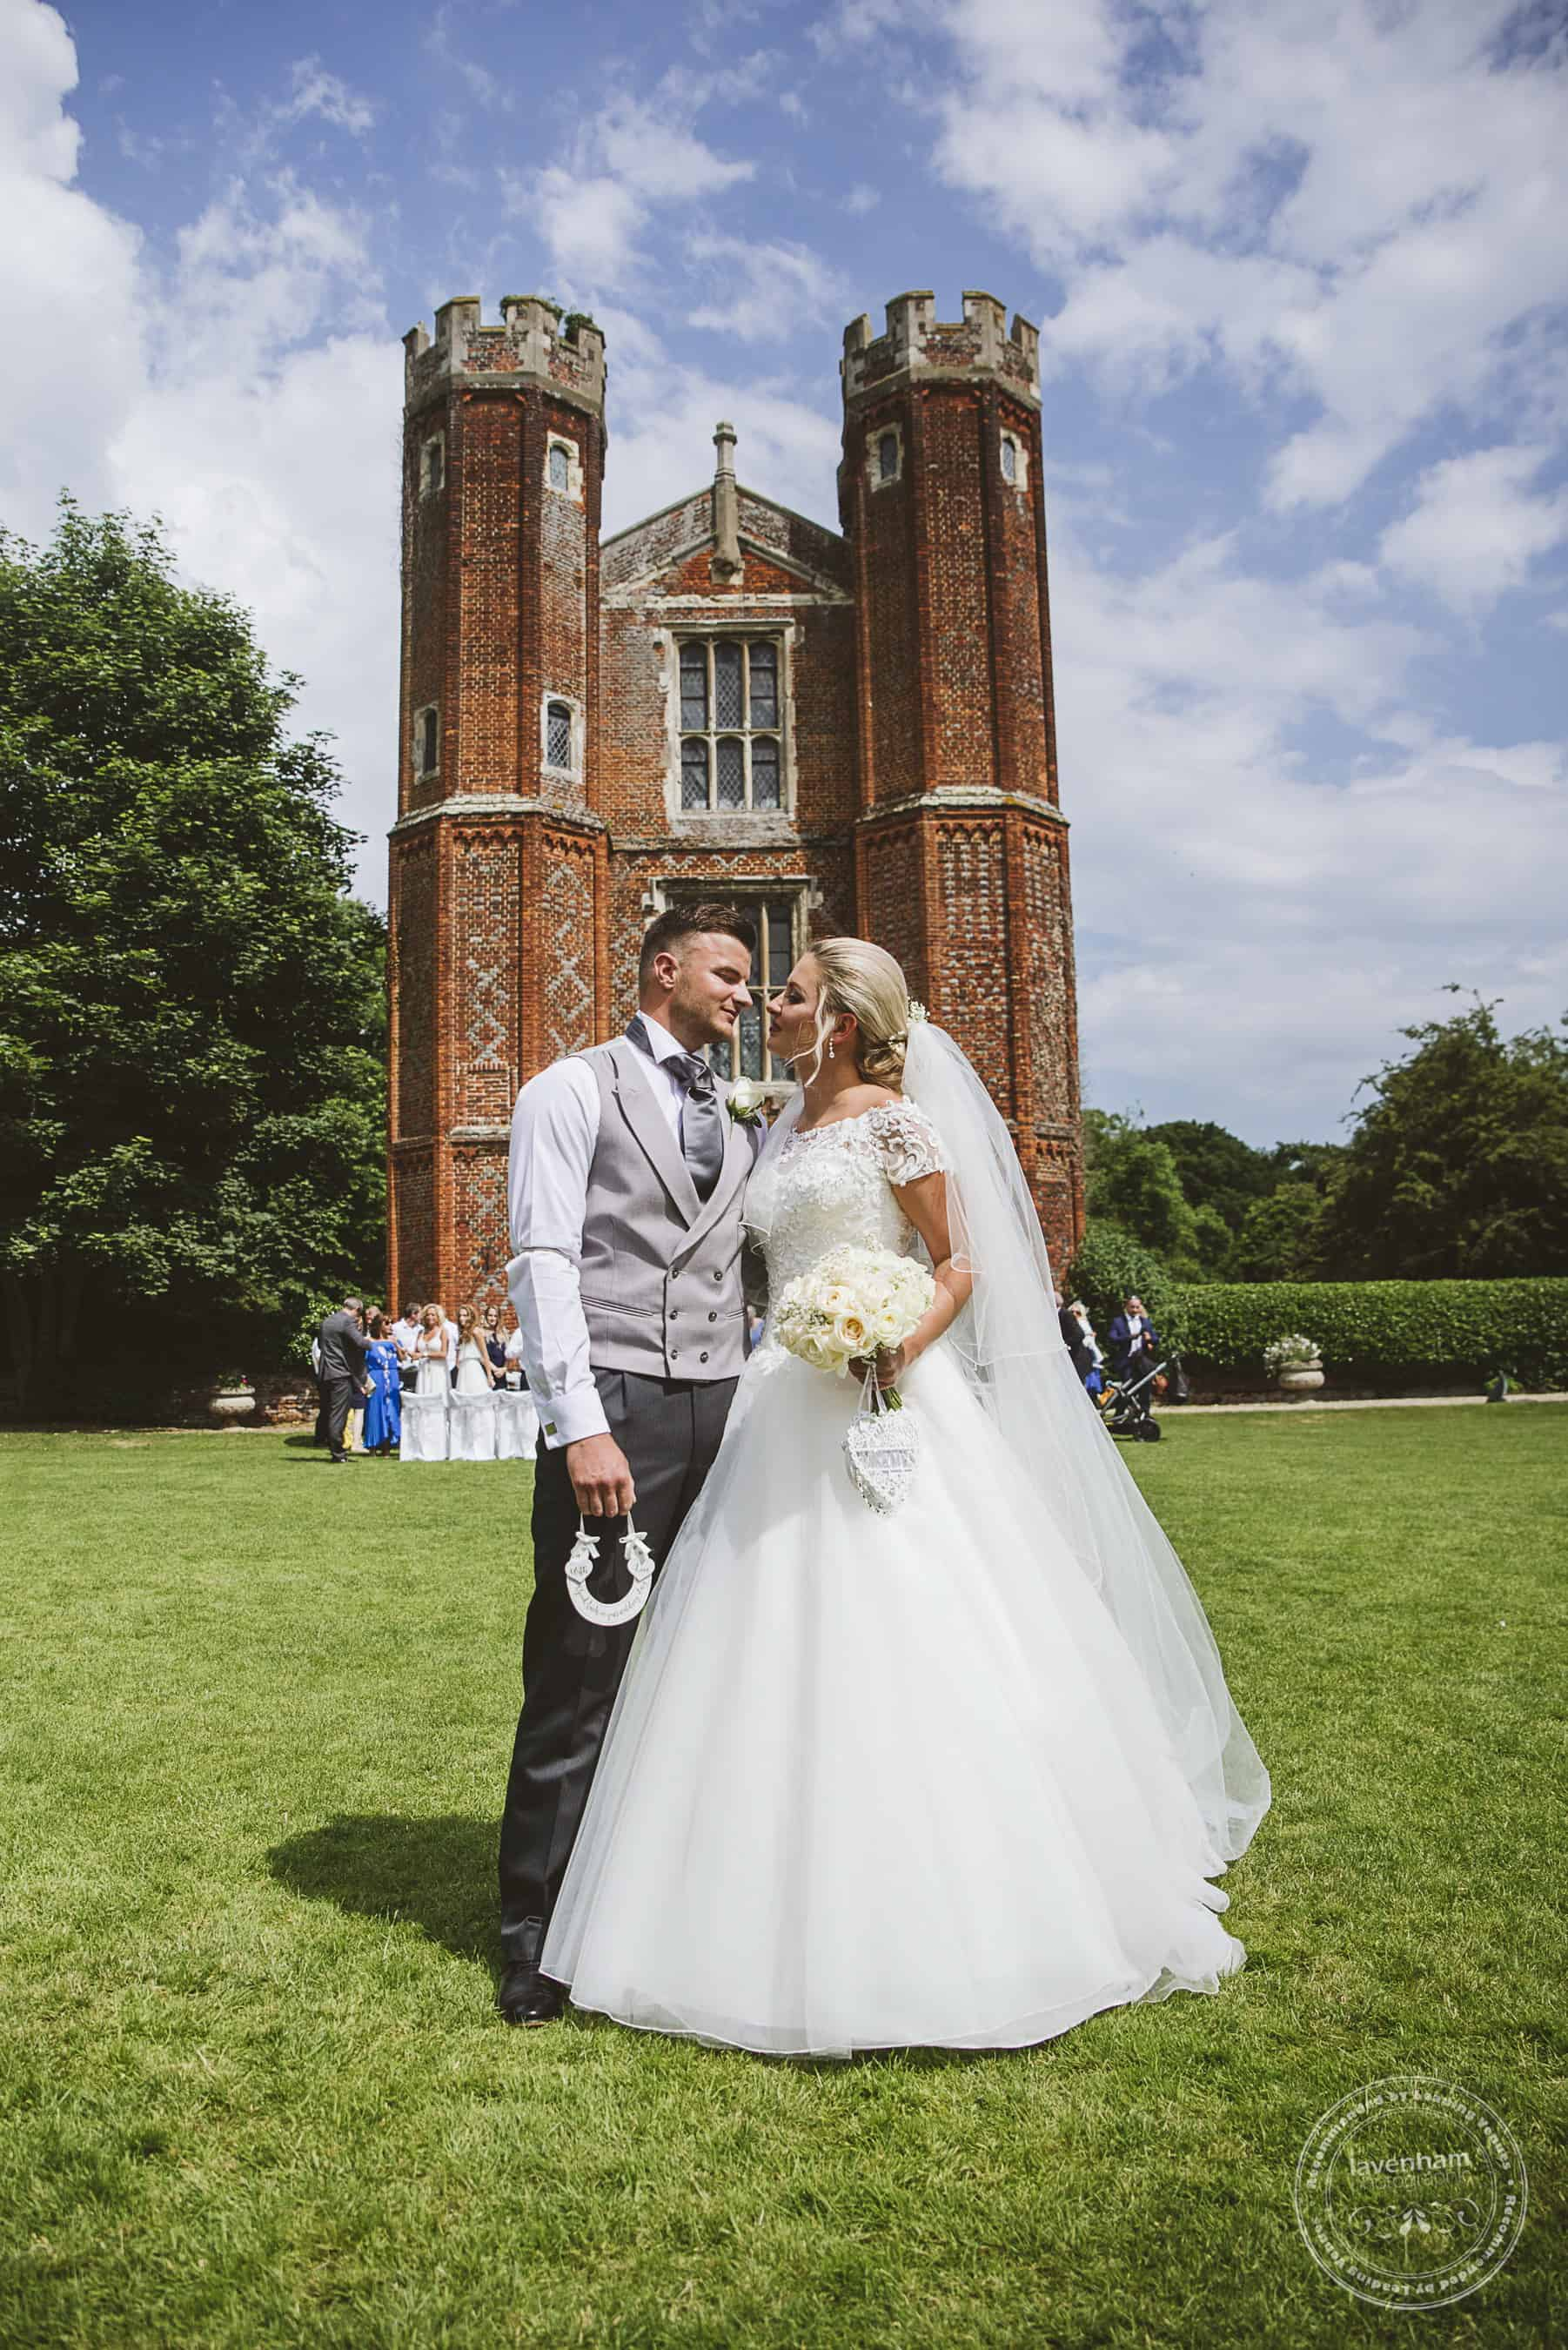 030618 Leez Priory Wedding Photography Lavenham Photographic 050